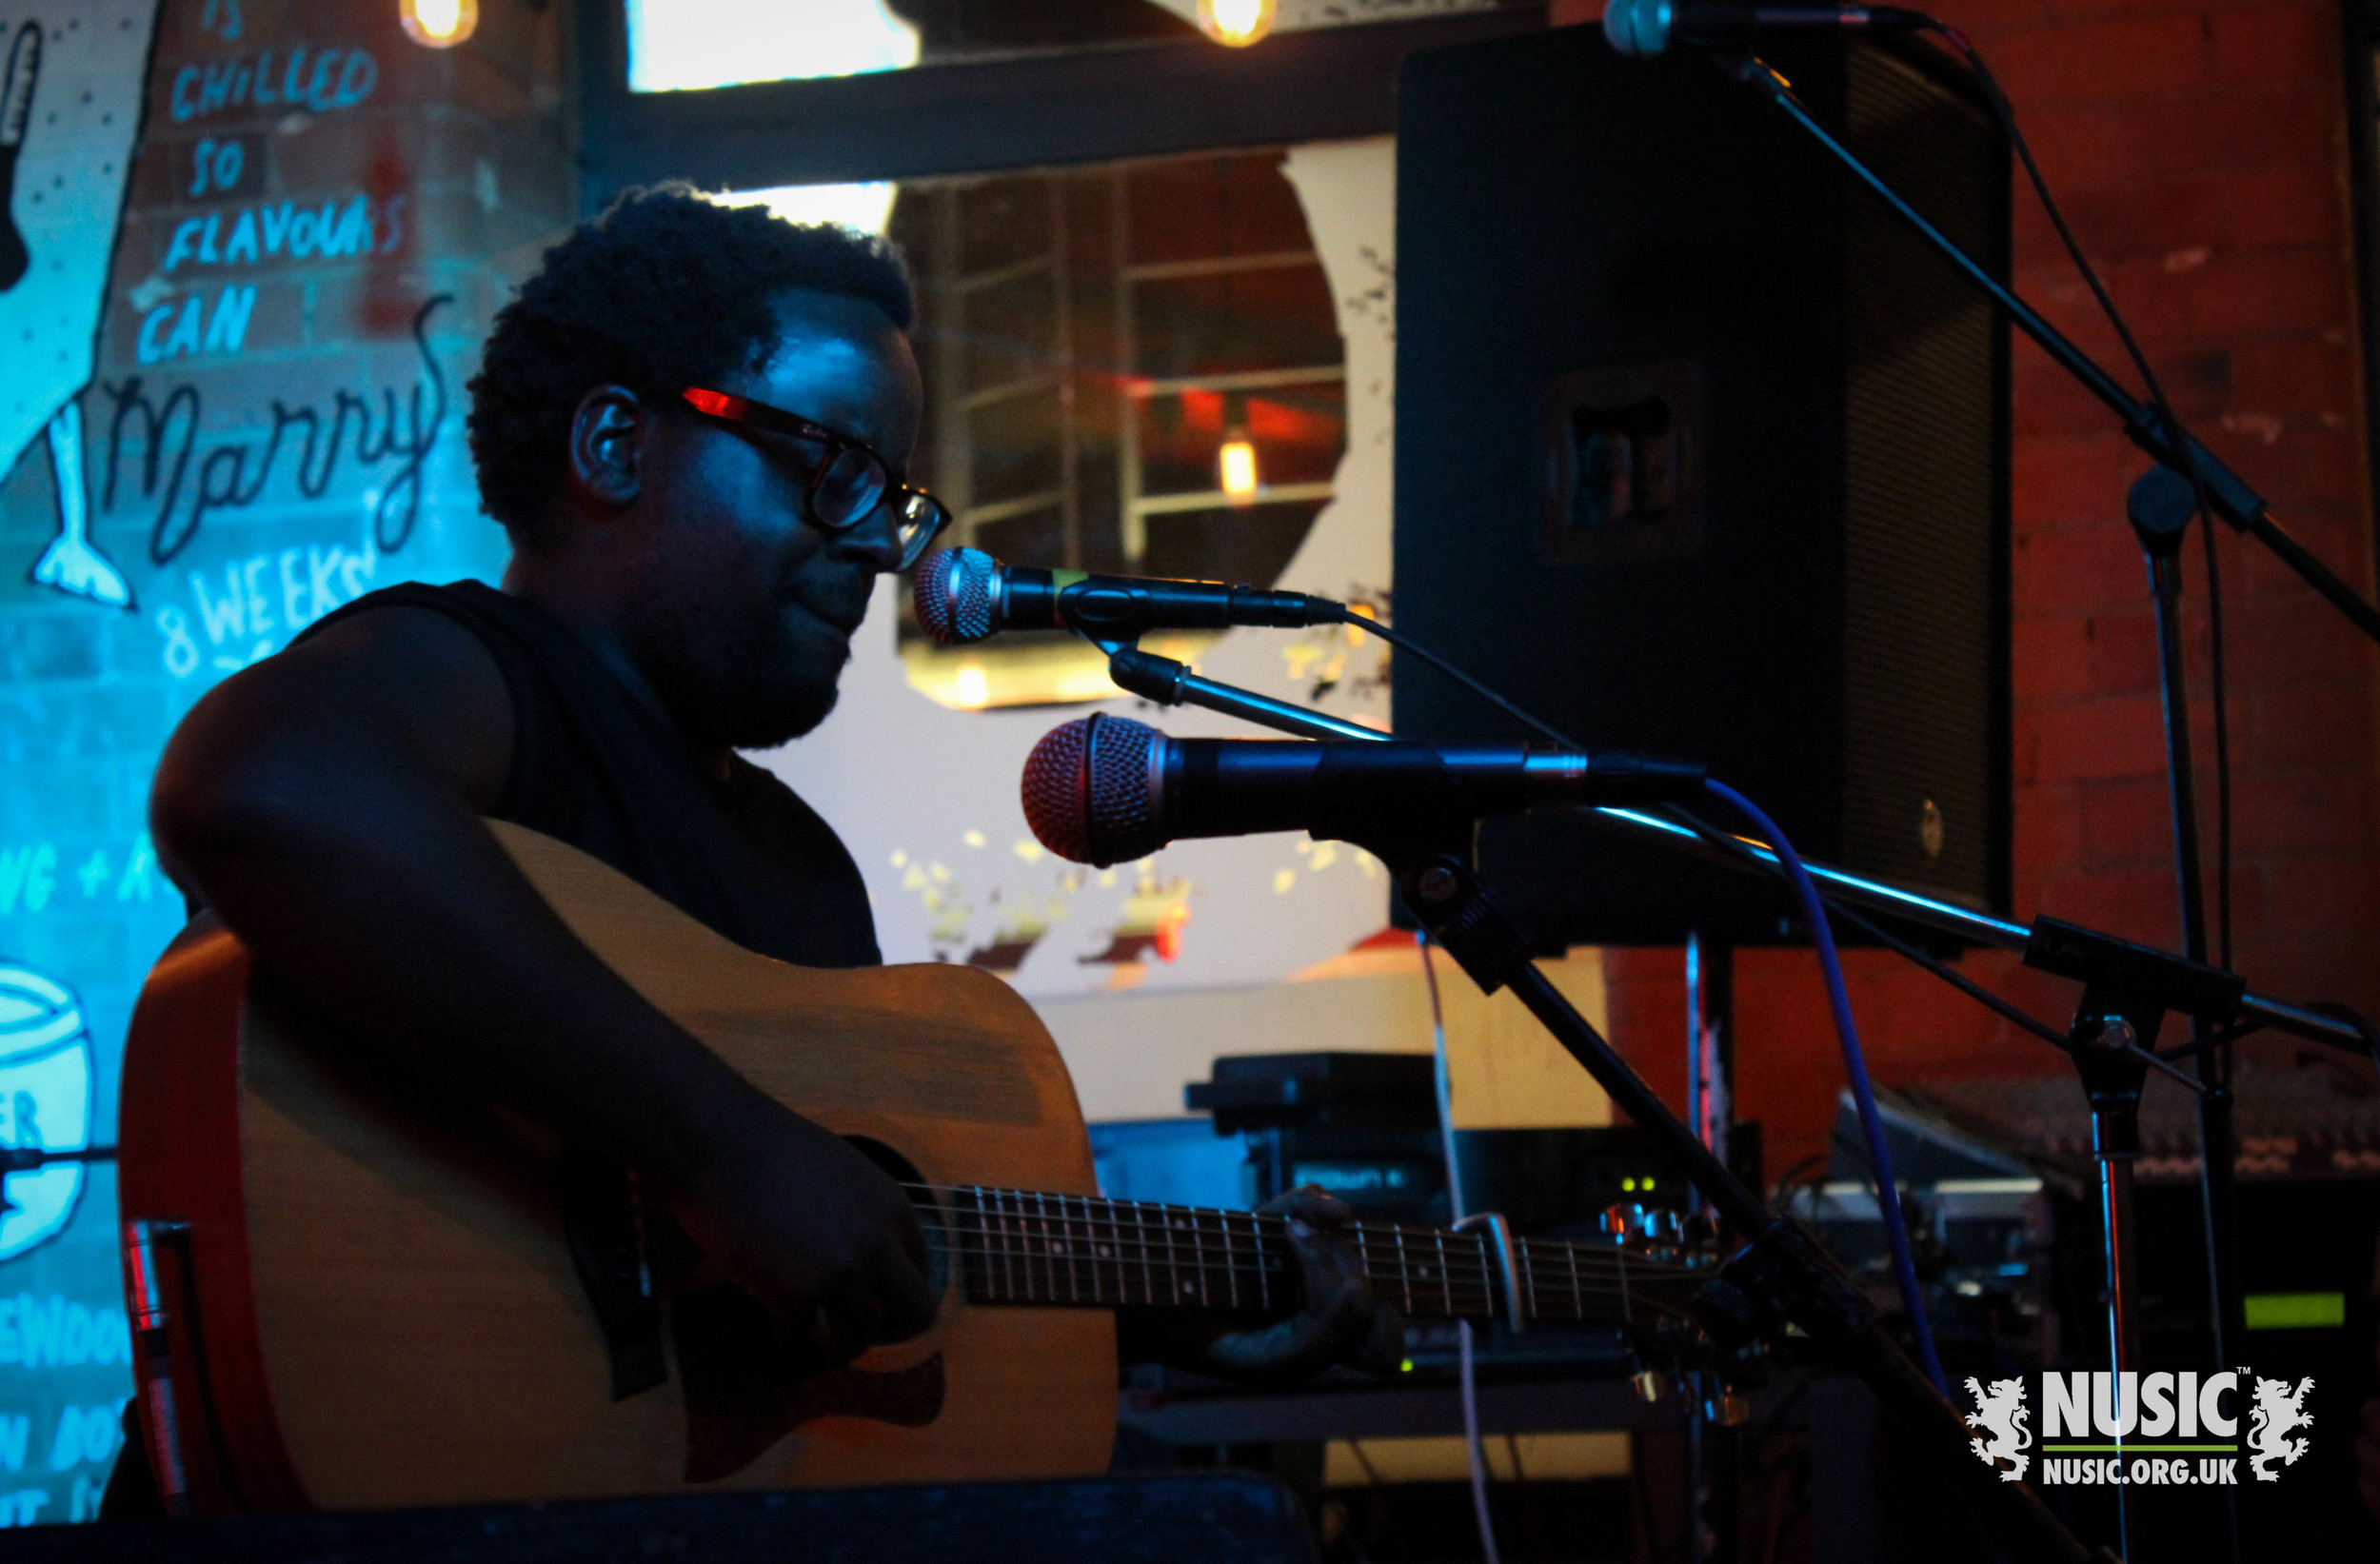 Daudi Matsiko @ Hockley Hustle 2015.